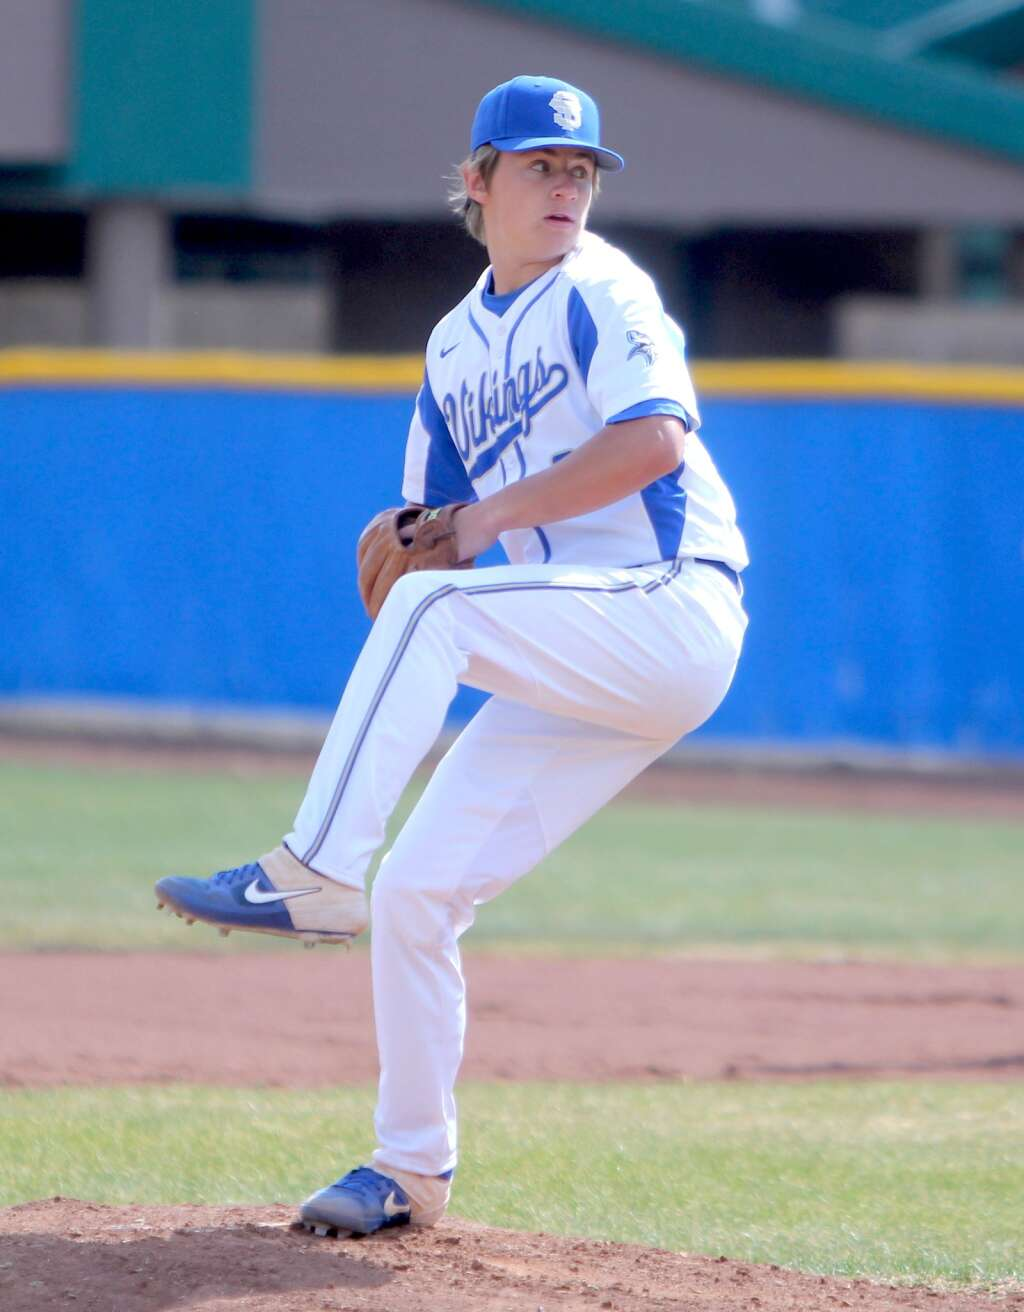 Andrew Lehmann delivers a pitch during his shutout victory.